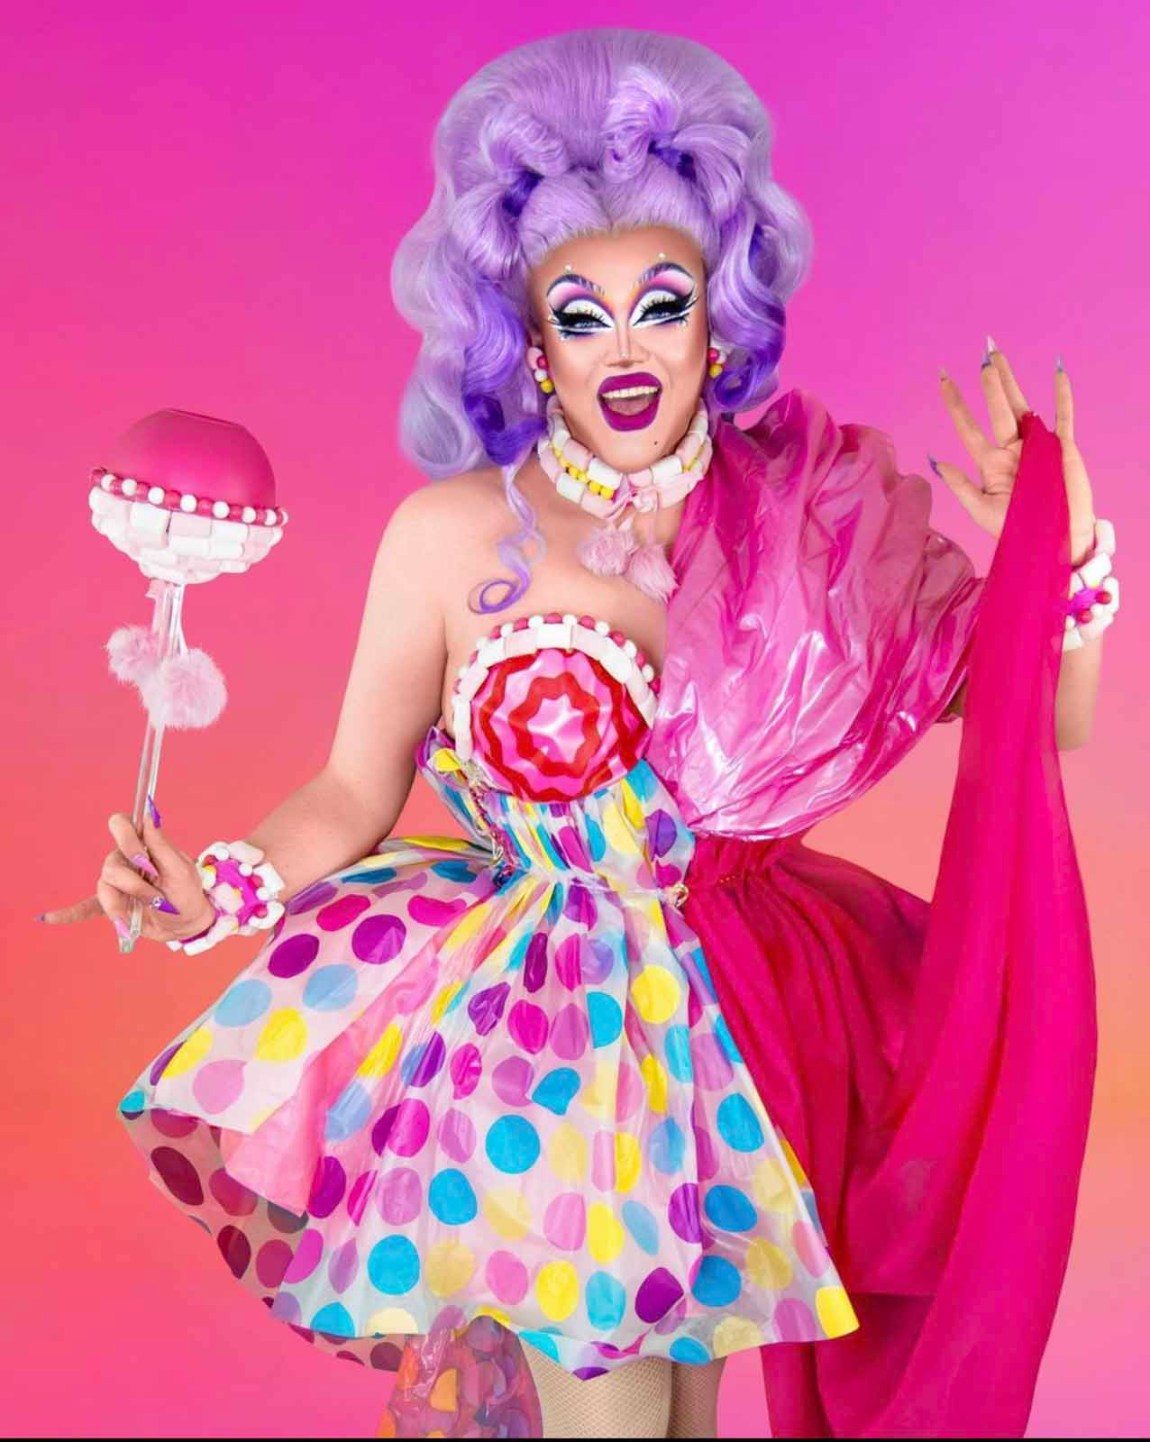 She may be fourth place, but Ellie Diamond's shine is far from done. Hear from the 'Drag Race UK' star about her experience on the show.